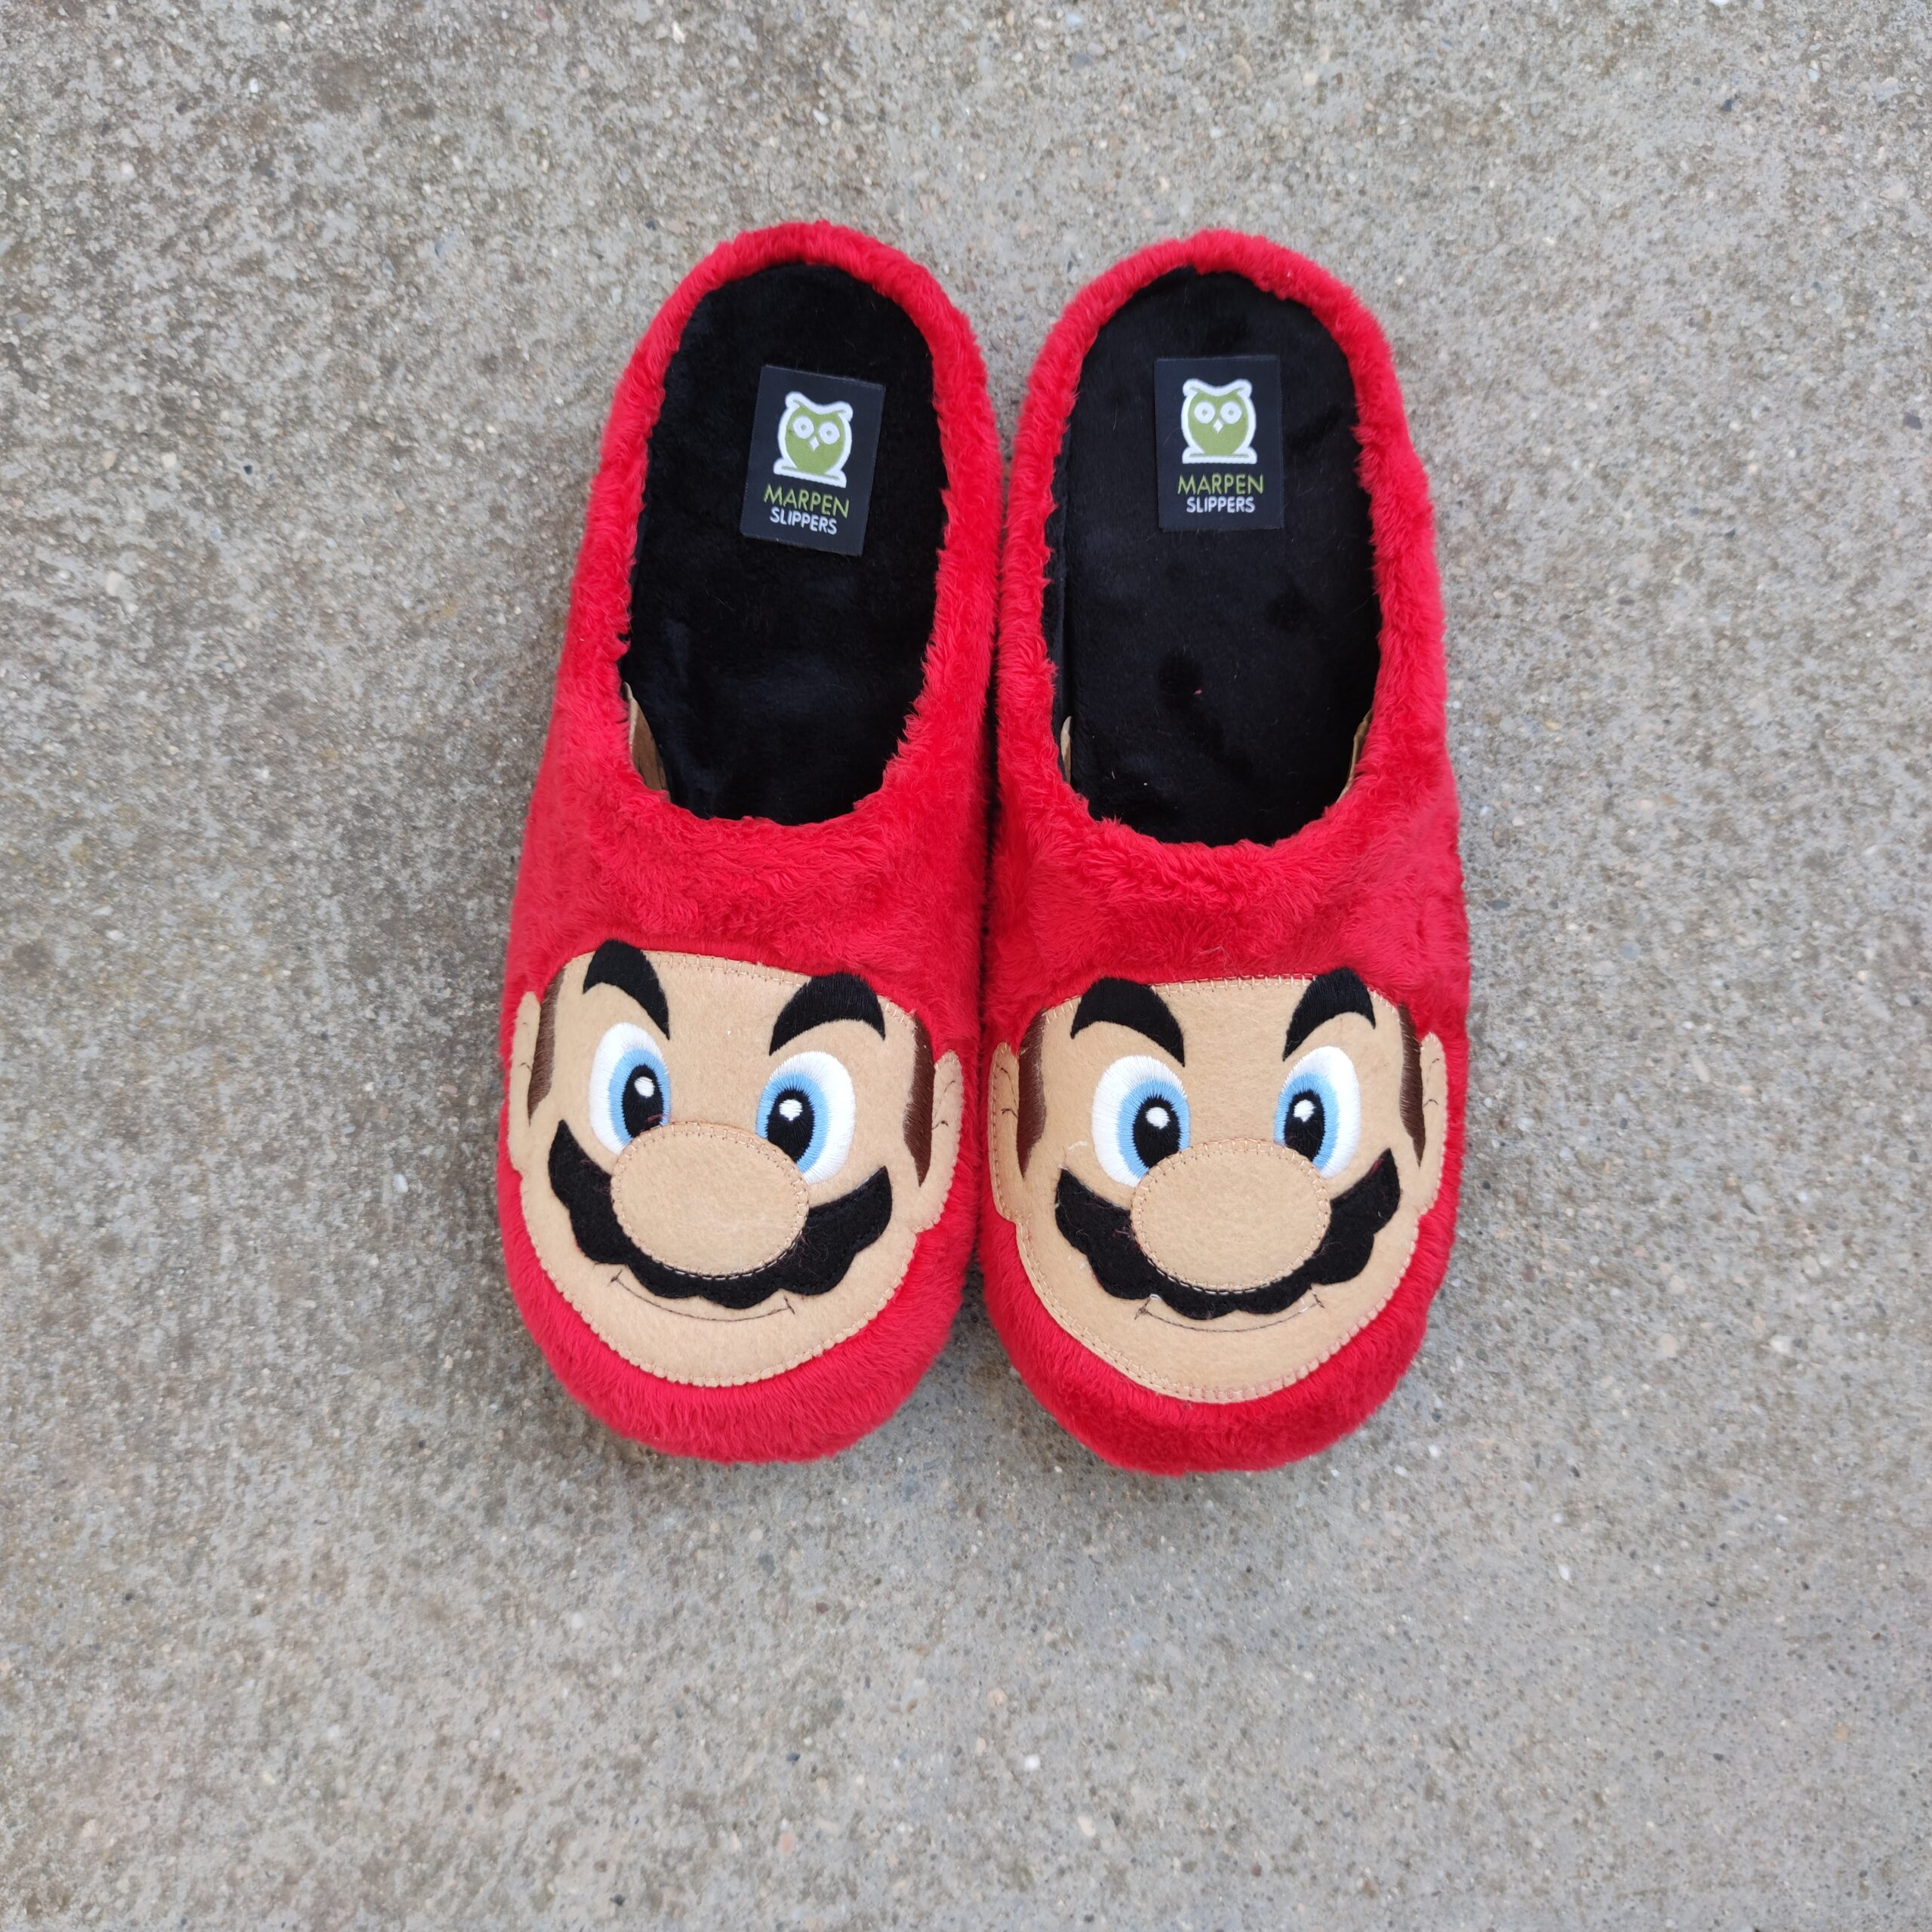 Zapatillas de Estar por casa - Slipper Mario Bros